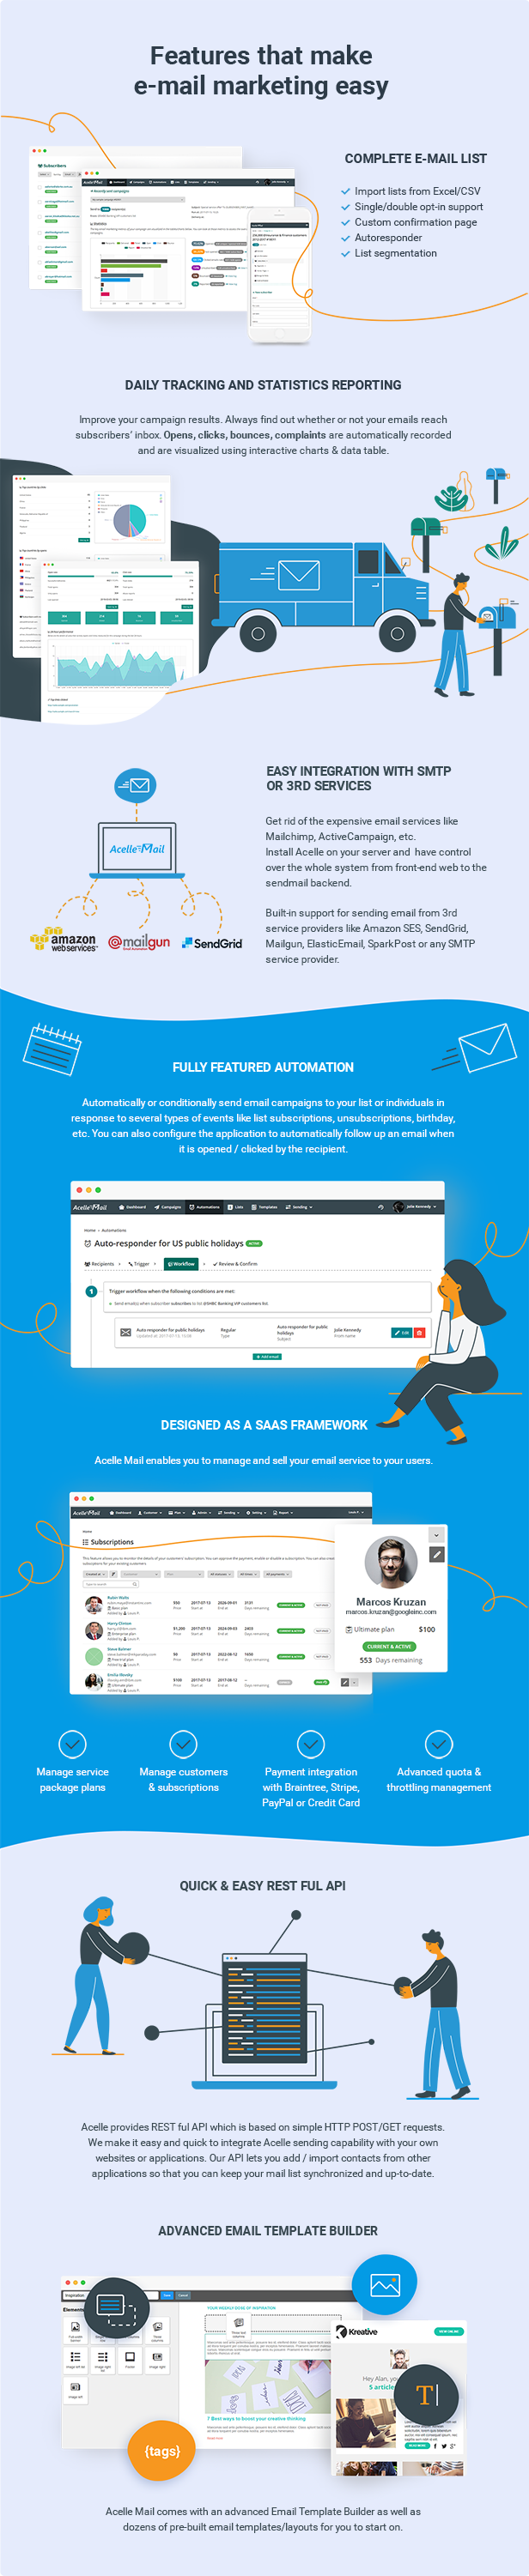 Acelle Email Marketing Web Application - 6